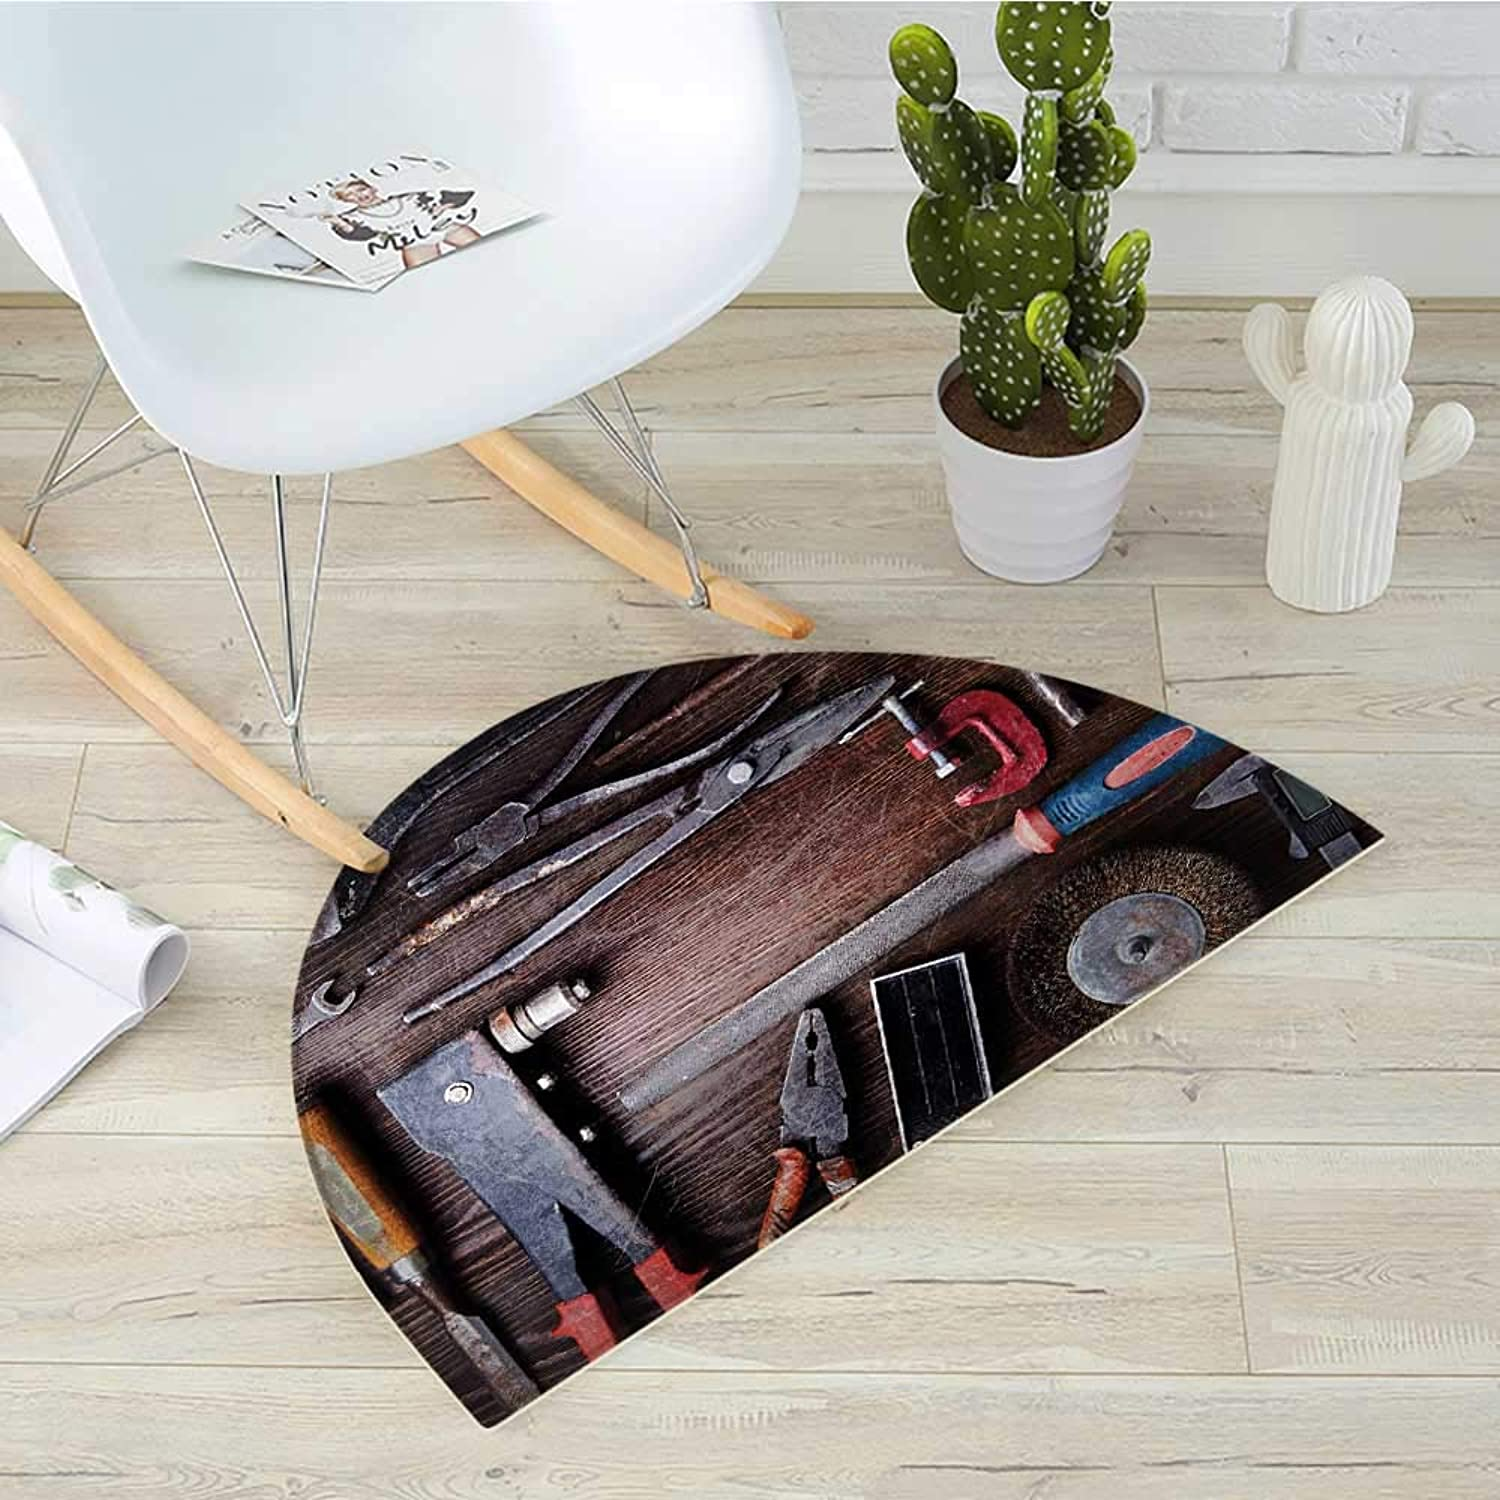 Industrial Semicircle Doormat Crafting Equipment with Obsolete Dusty Mechanic Tools Collection of a Carpenter Halfmoon doormats H 35.4  xD 53.1  Multicolor